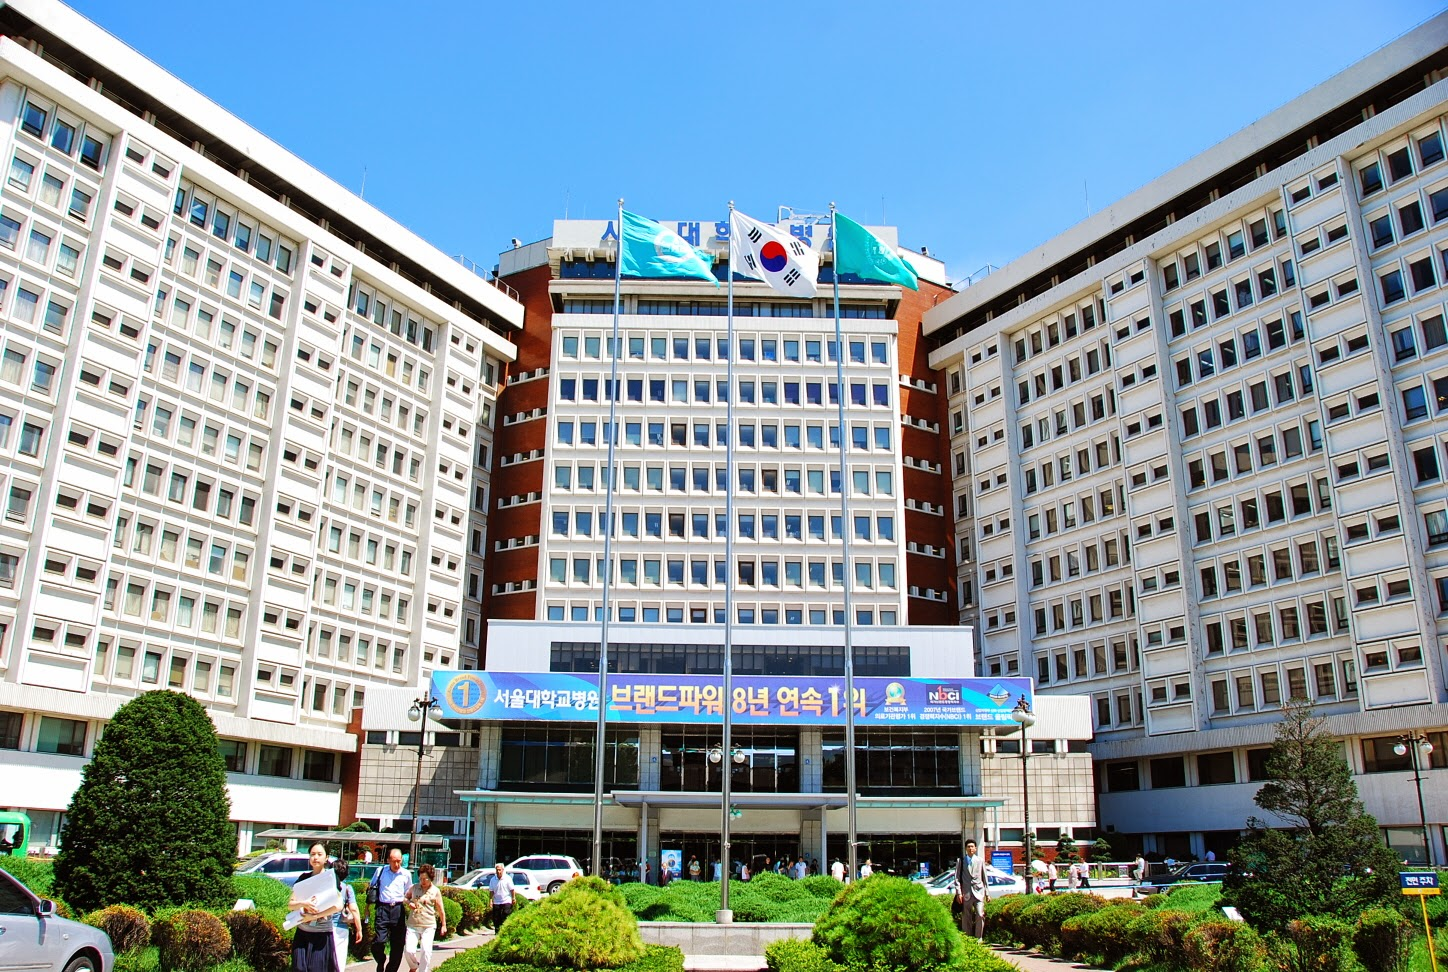 dai-hoc-quoc-gia-seoul-national-university-1